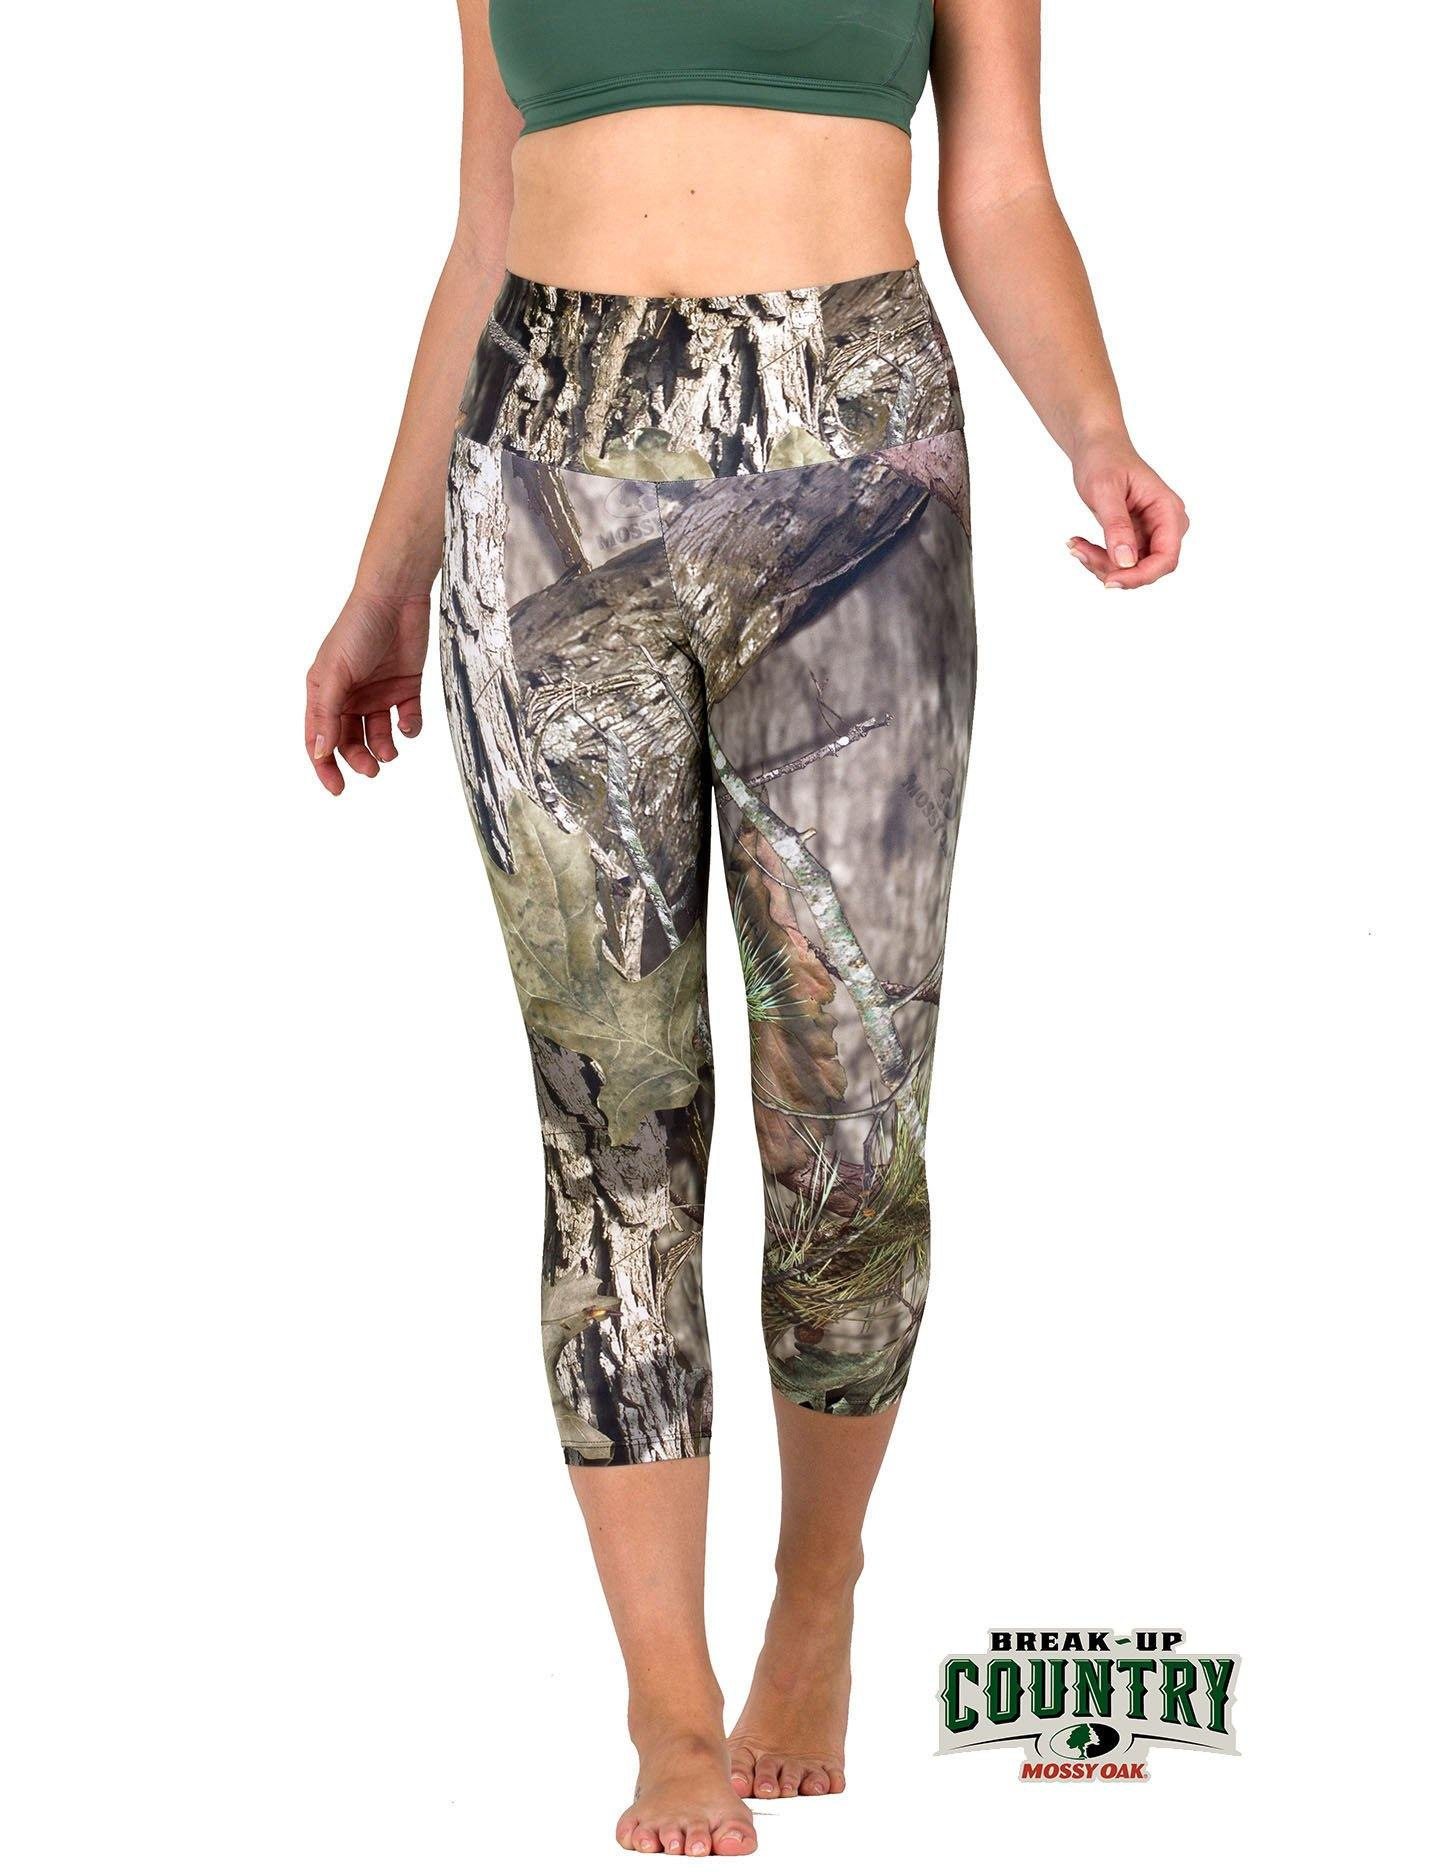 Apsara Leggings High Waist Capri, Mossy Oak Break-Up Country